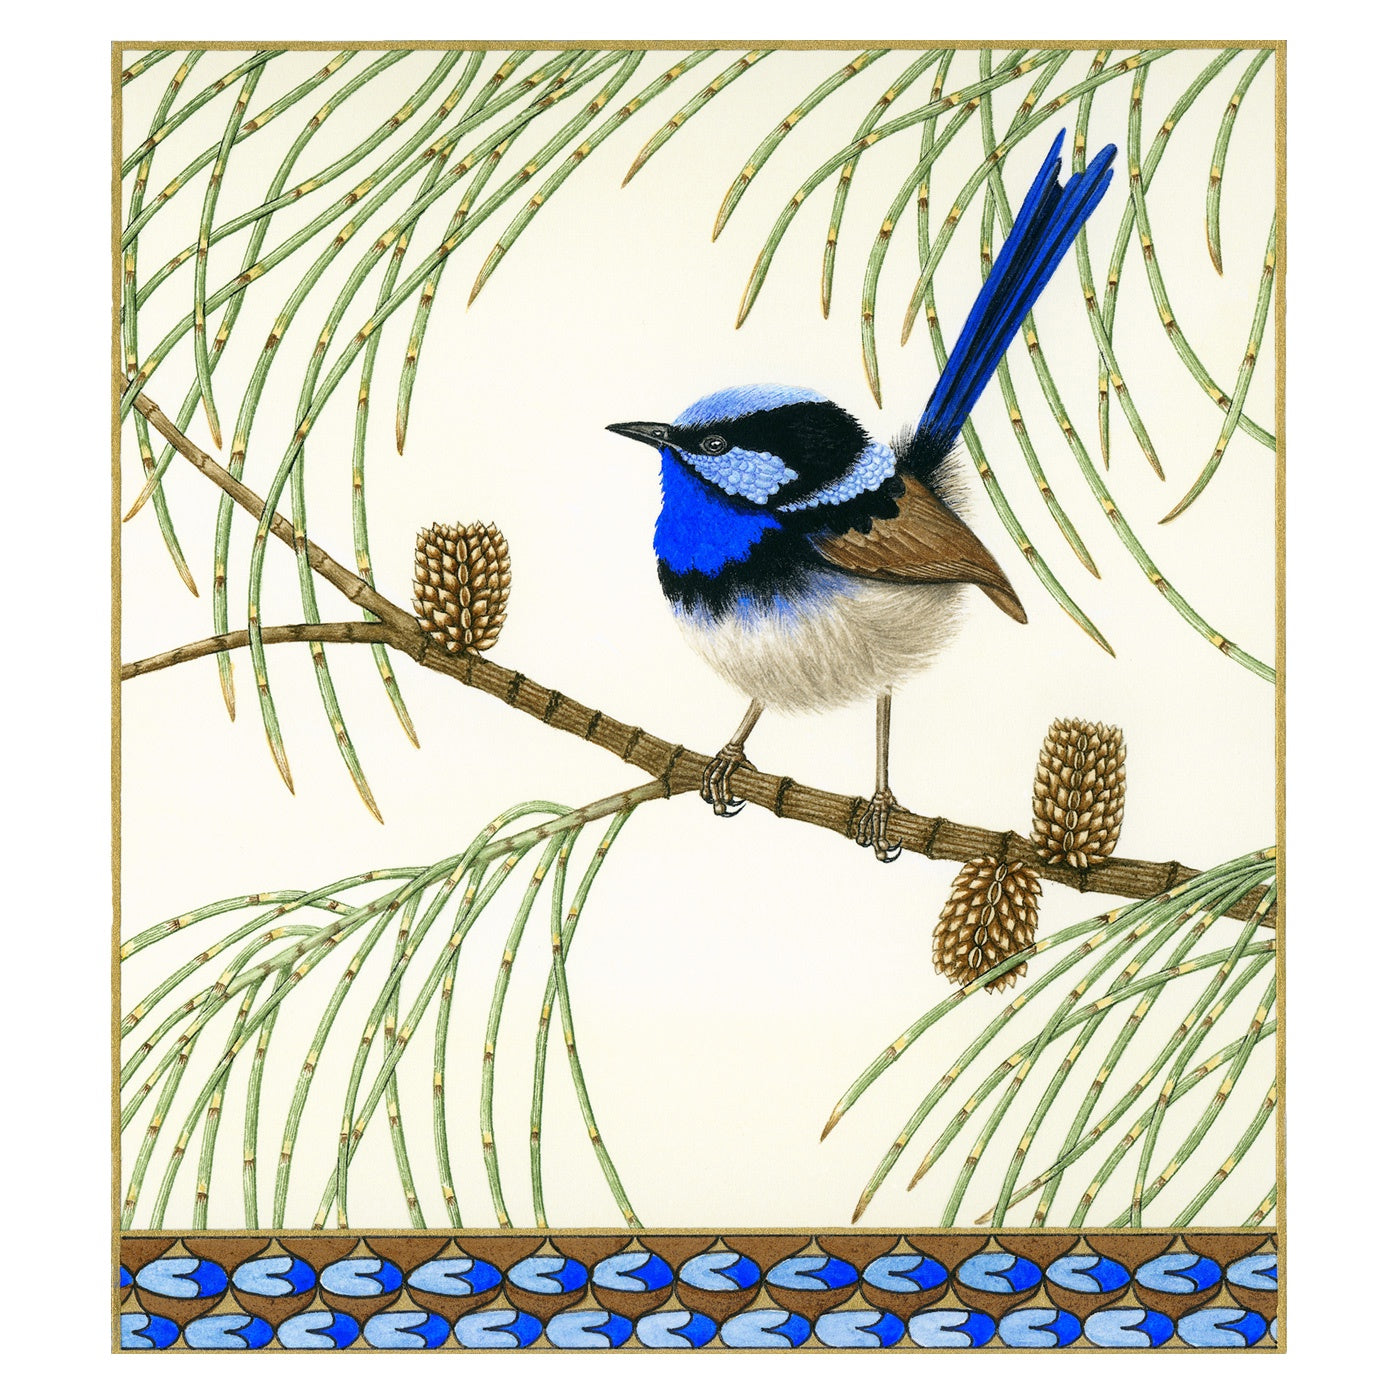 Sylvie Gerozisis - Birds of Tasmania - Art Print - Superb Fairy-wren